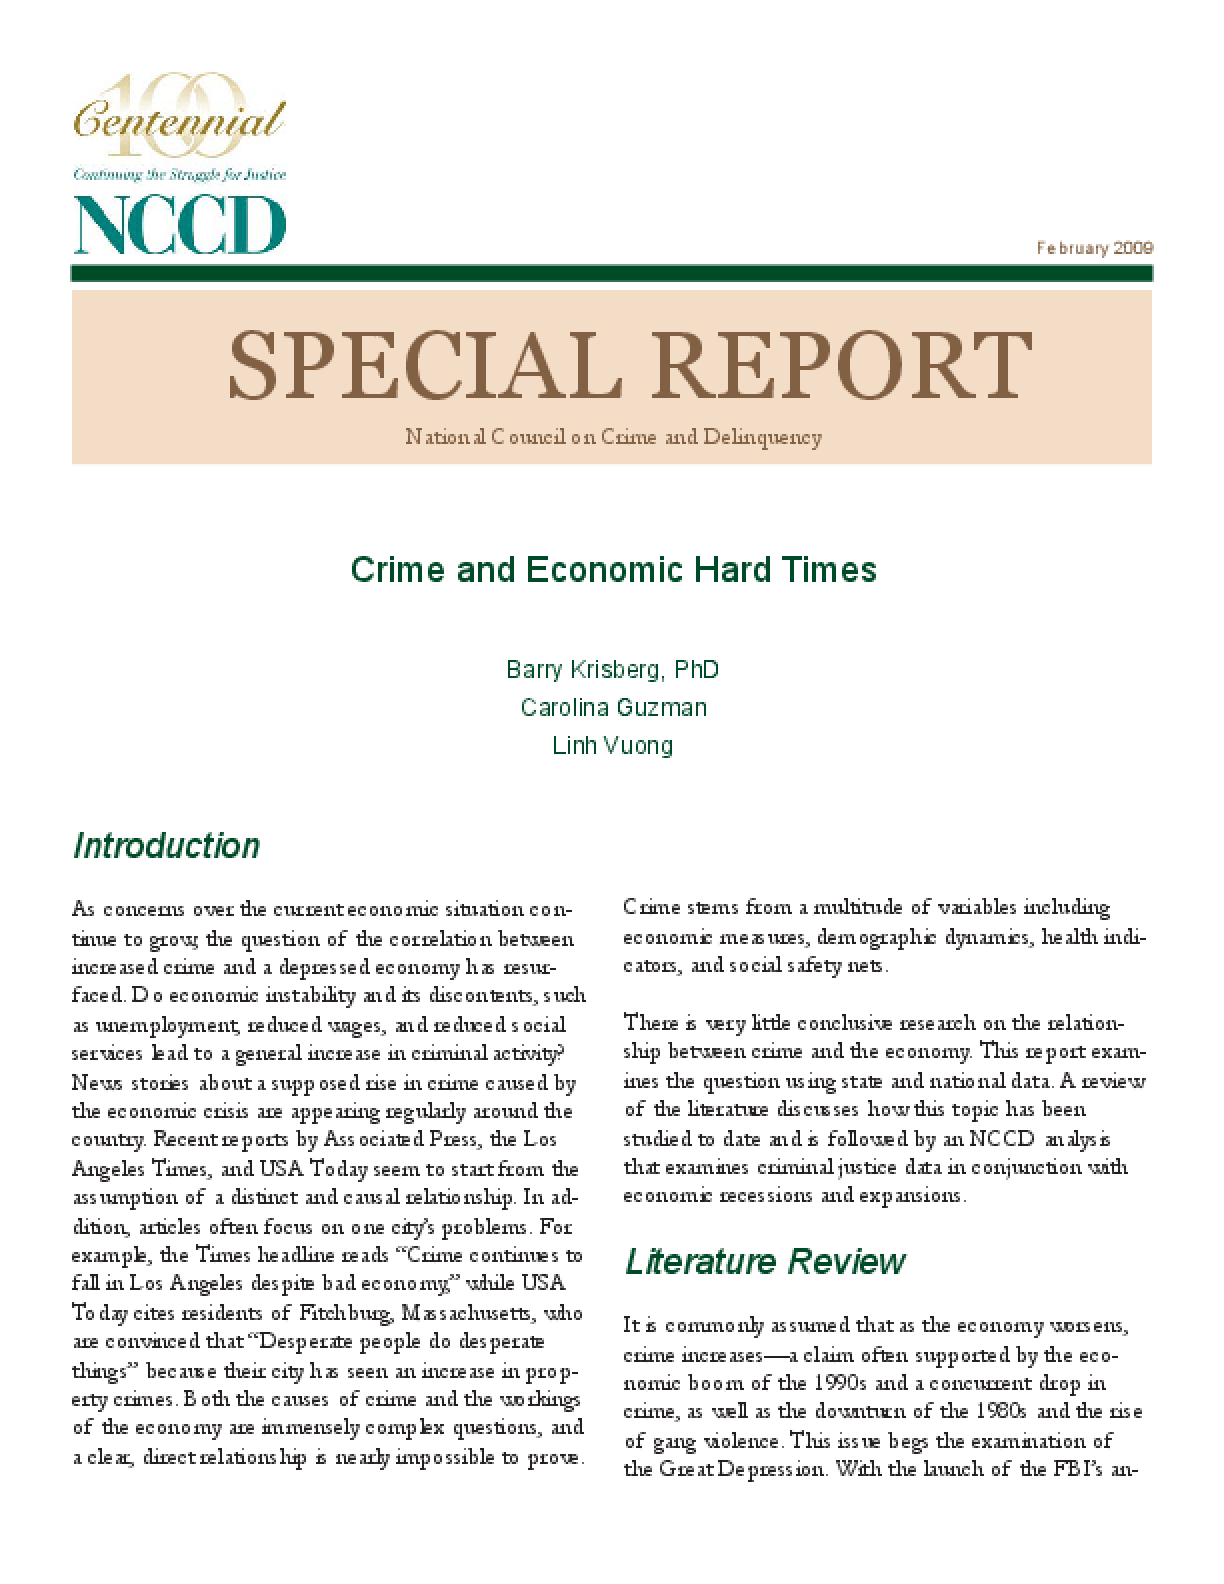 Special Report: Crime and Economic Hard Times